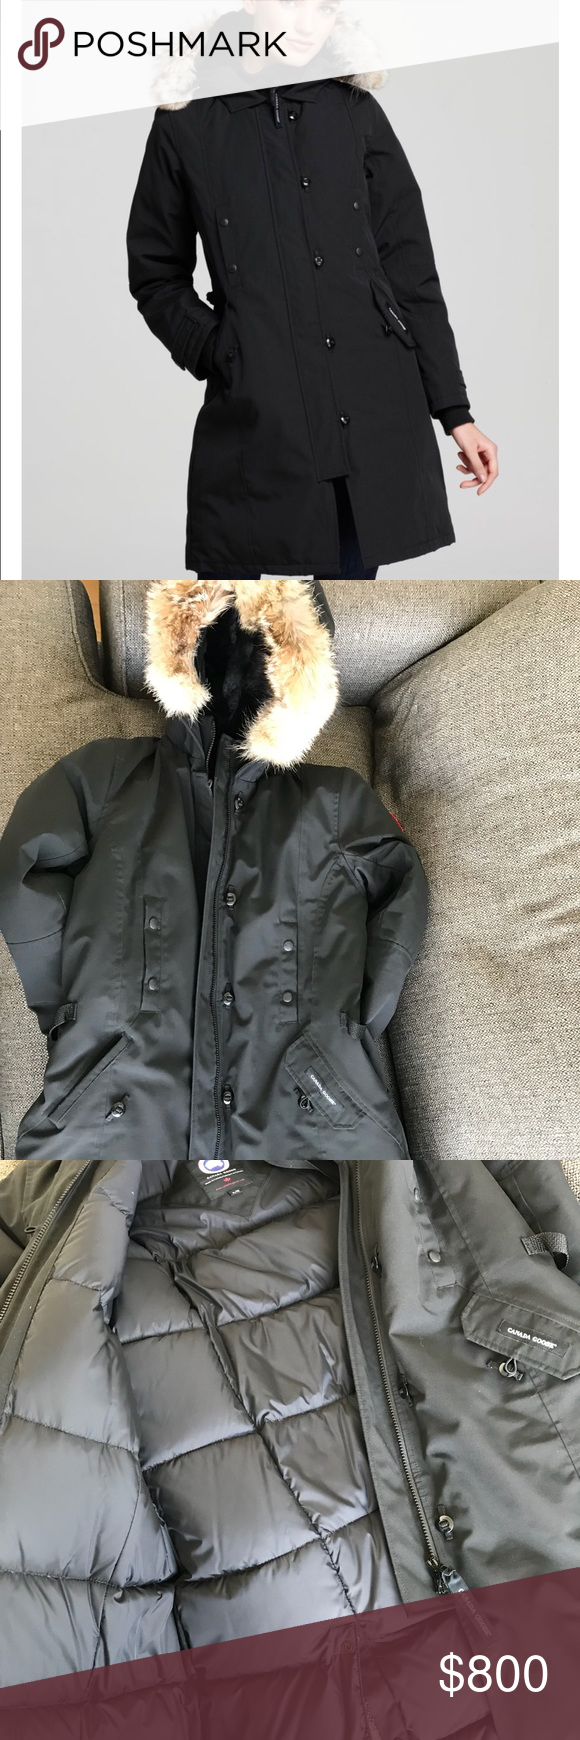 Canada Goose Kensington Parker Like New Used Once. No marks or stains. Size xxl